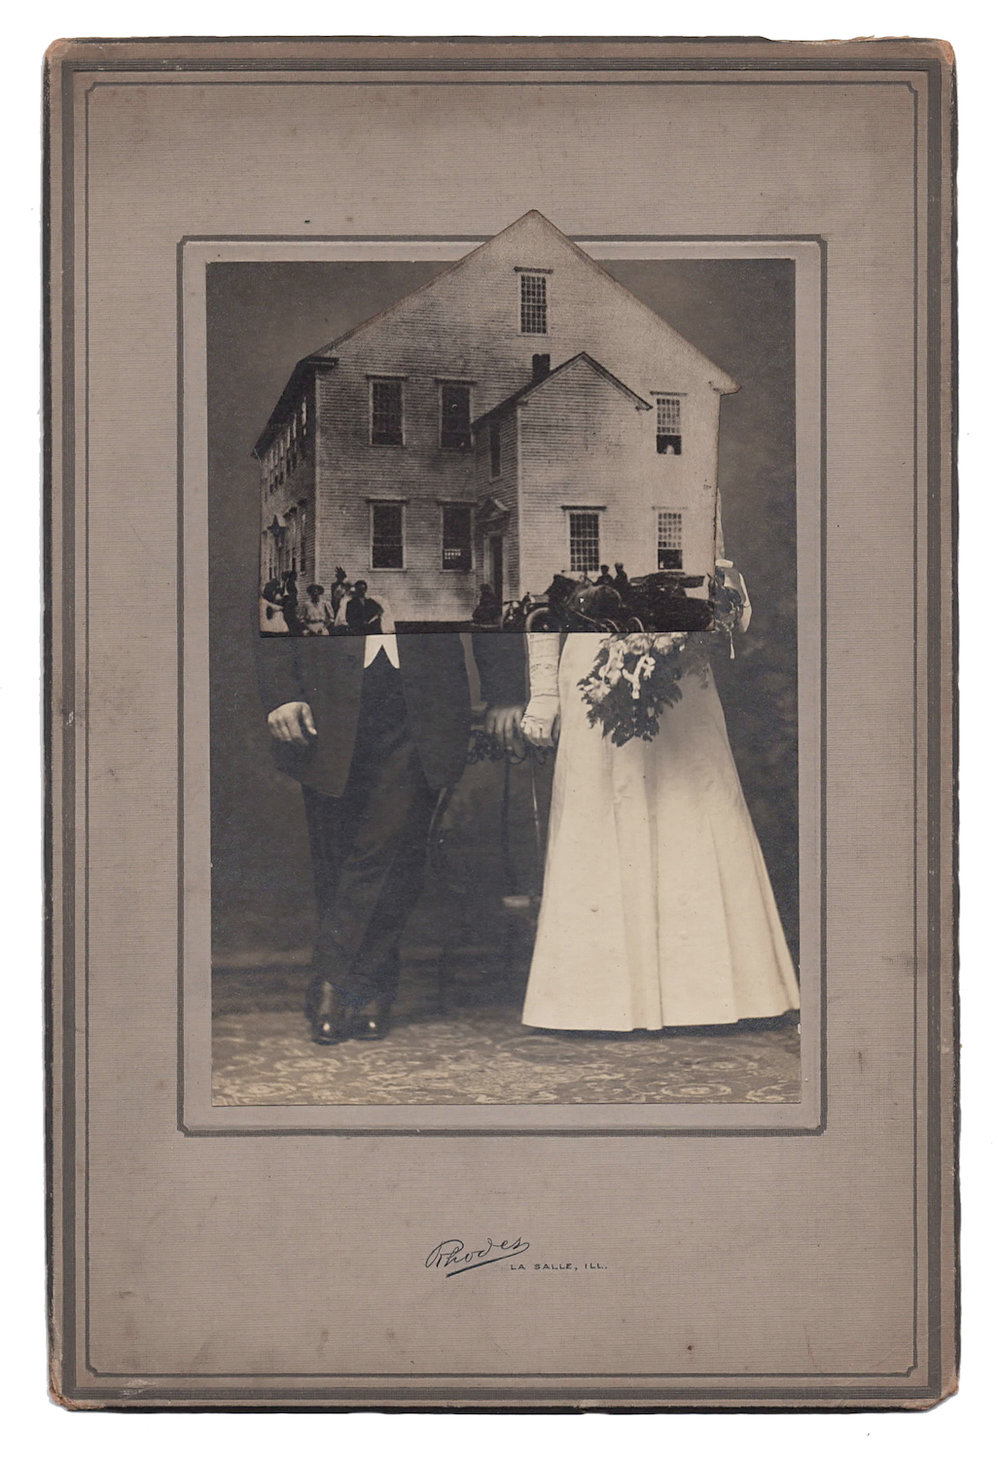 Wedding 11, 2016, Found Photographs & Collage, 9 x 6 inches